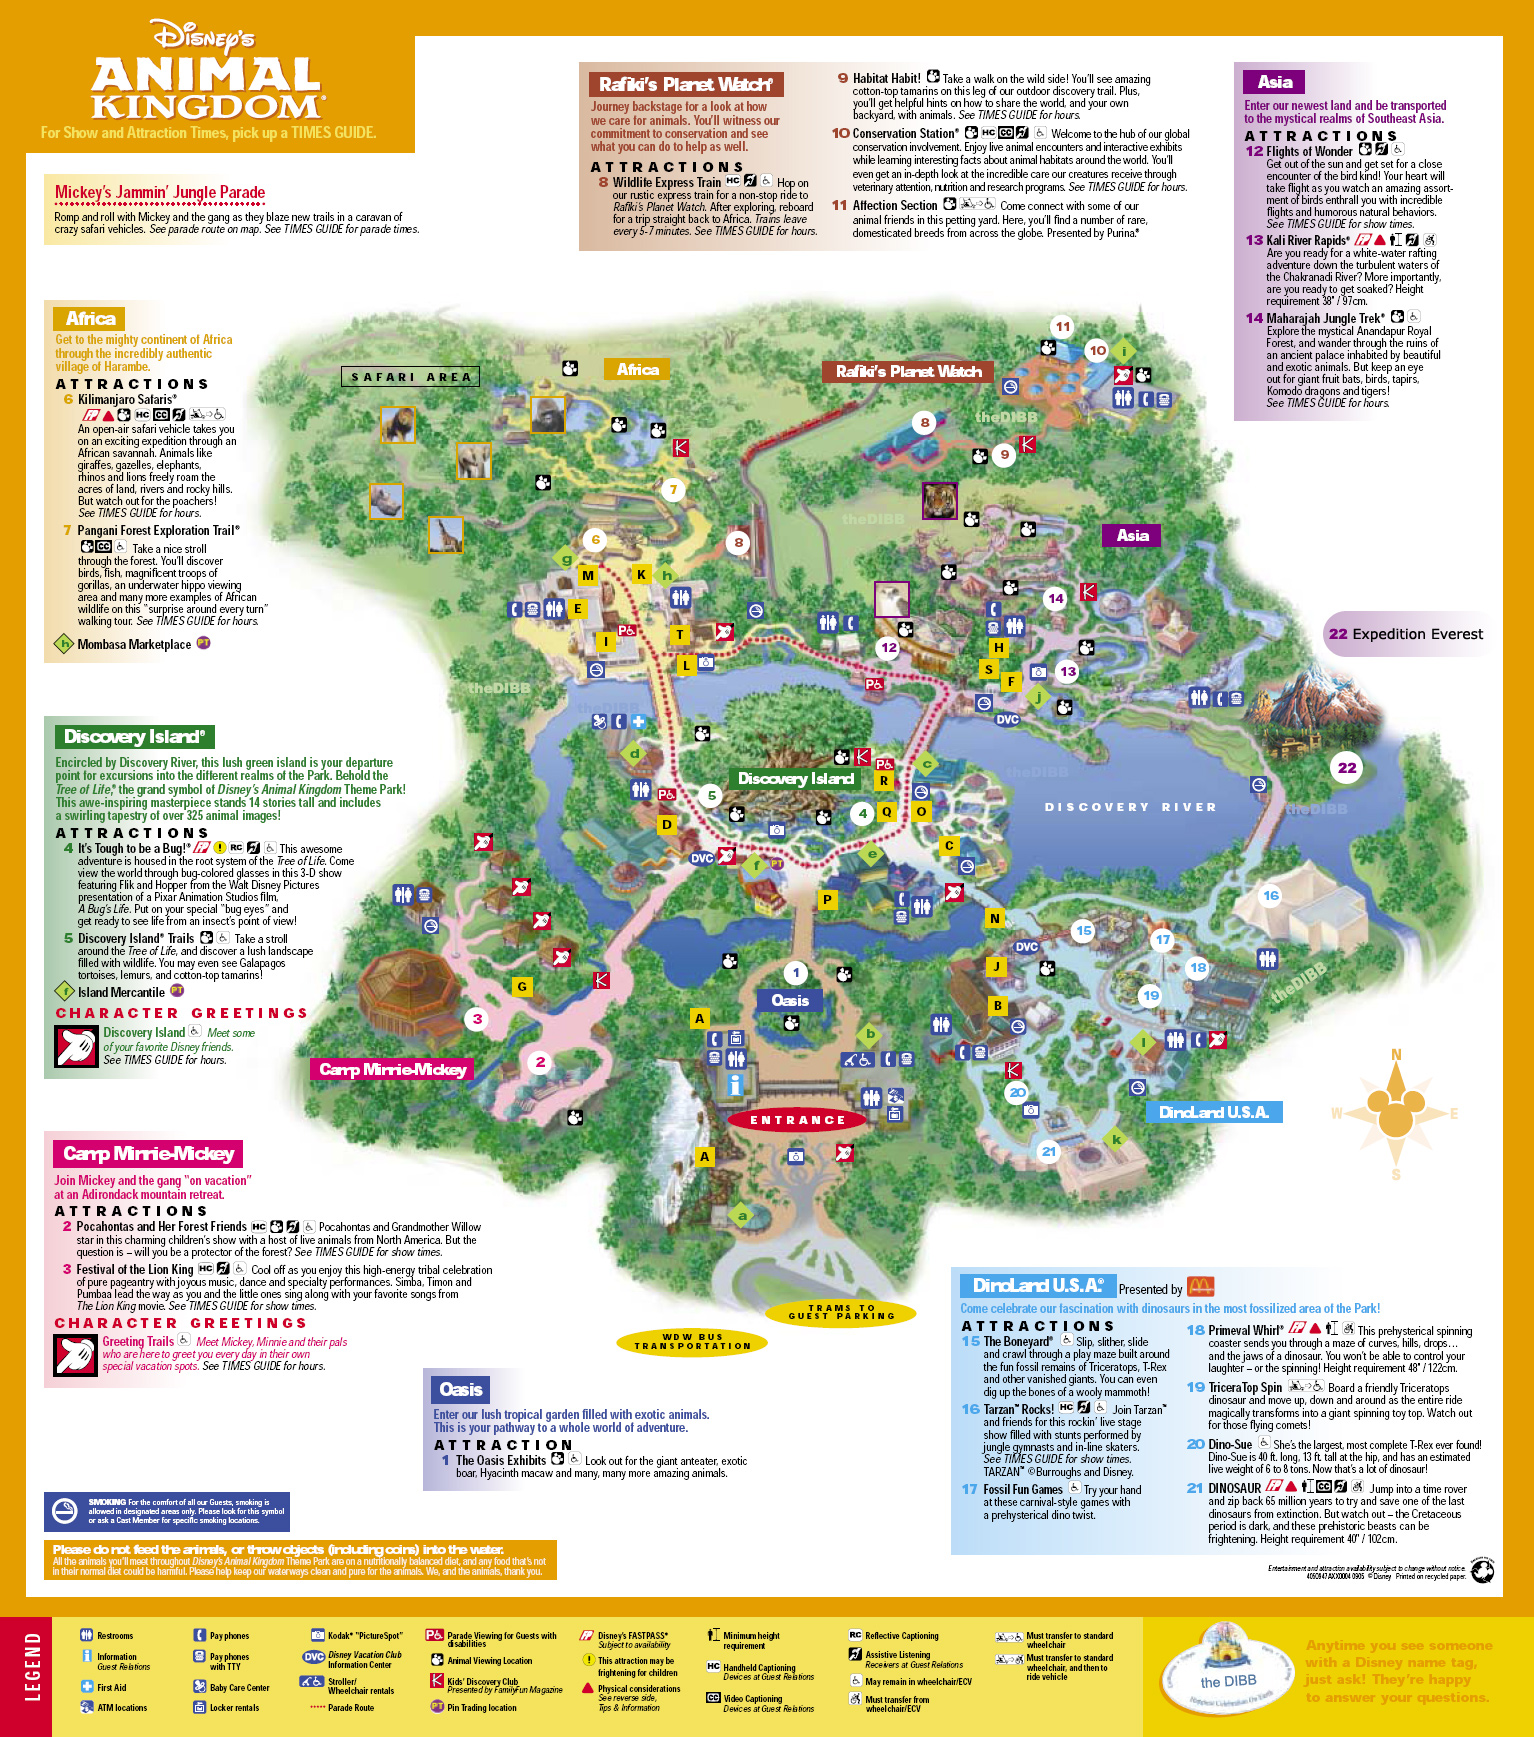 Animal Kingdom Vacation Pictures Disney World Live Suchart ... |Disney Animal Kingdom Map